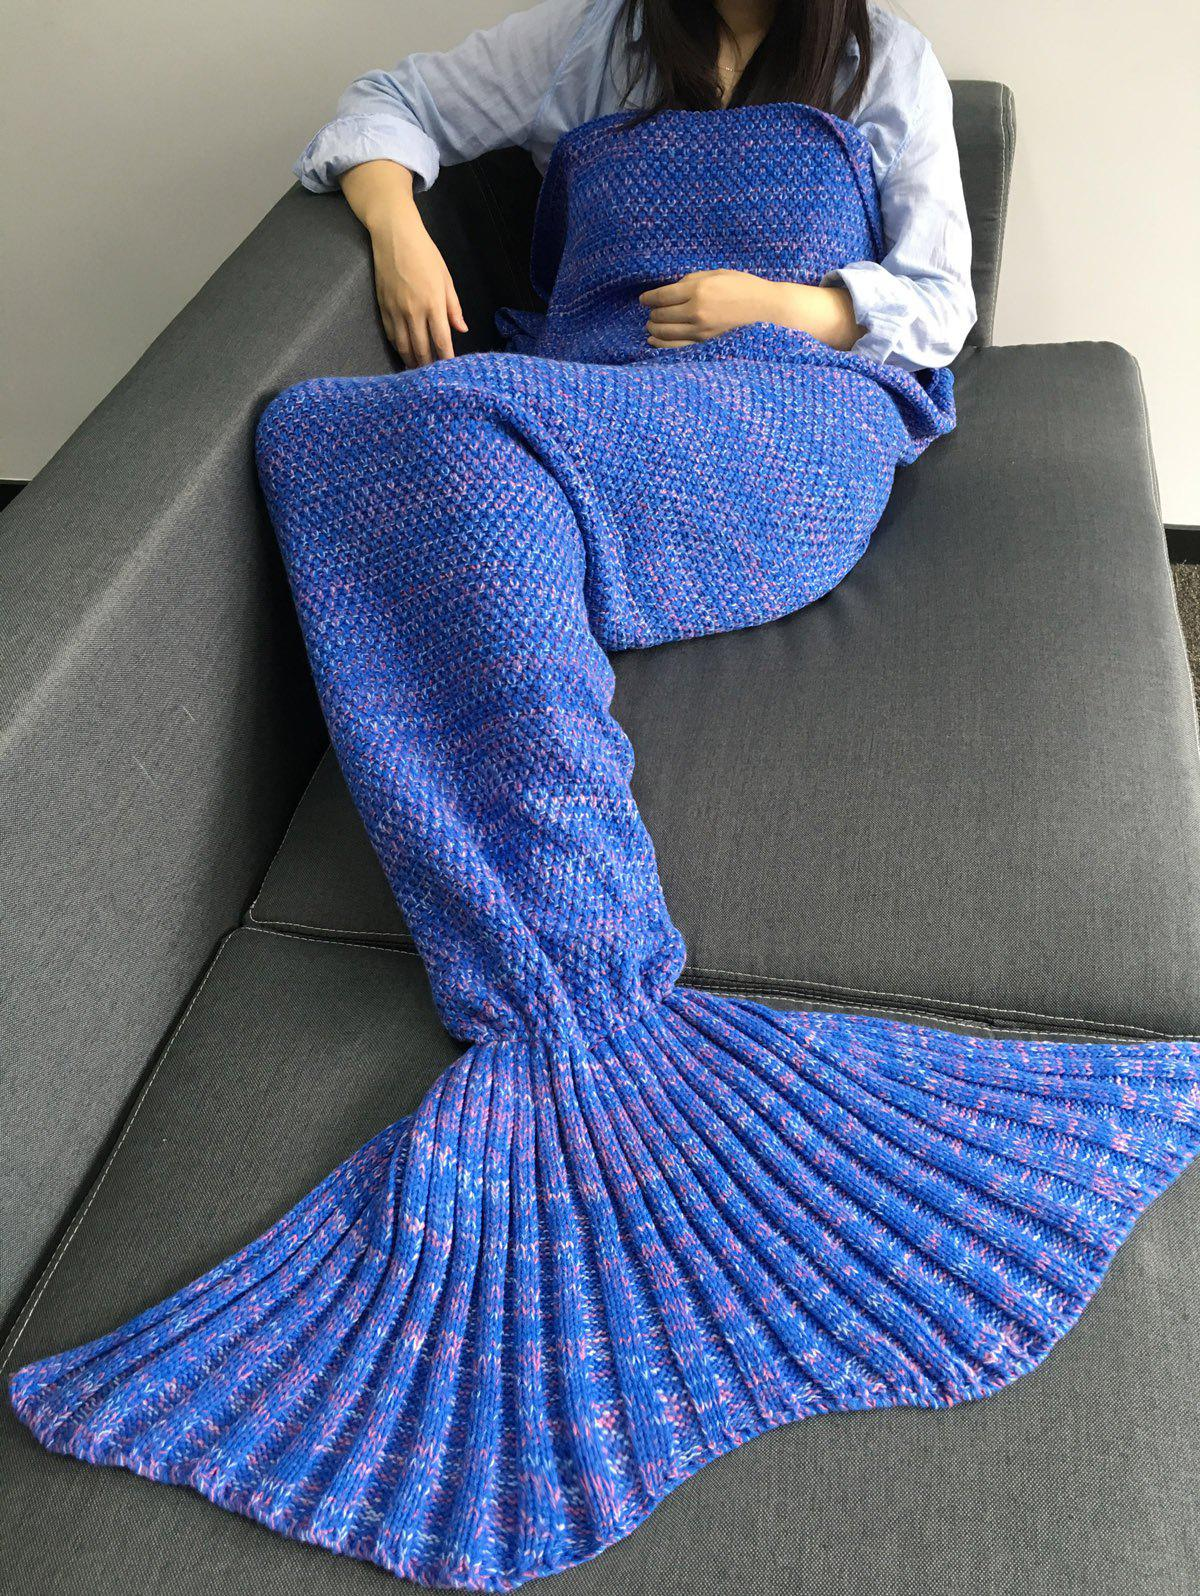 Latest Super Soft Sleeping Bags Yarn Knitted Mermaid Tail Blanket